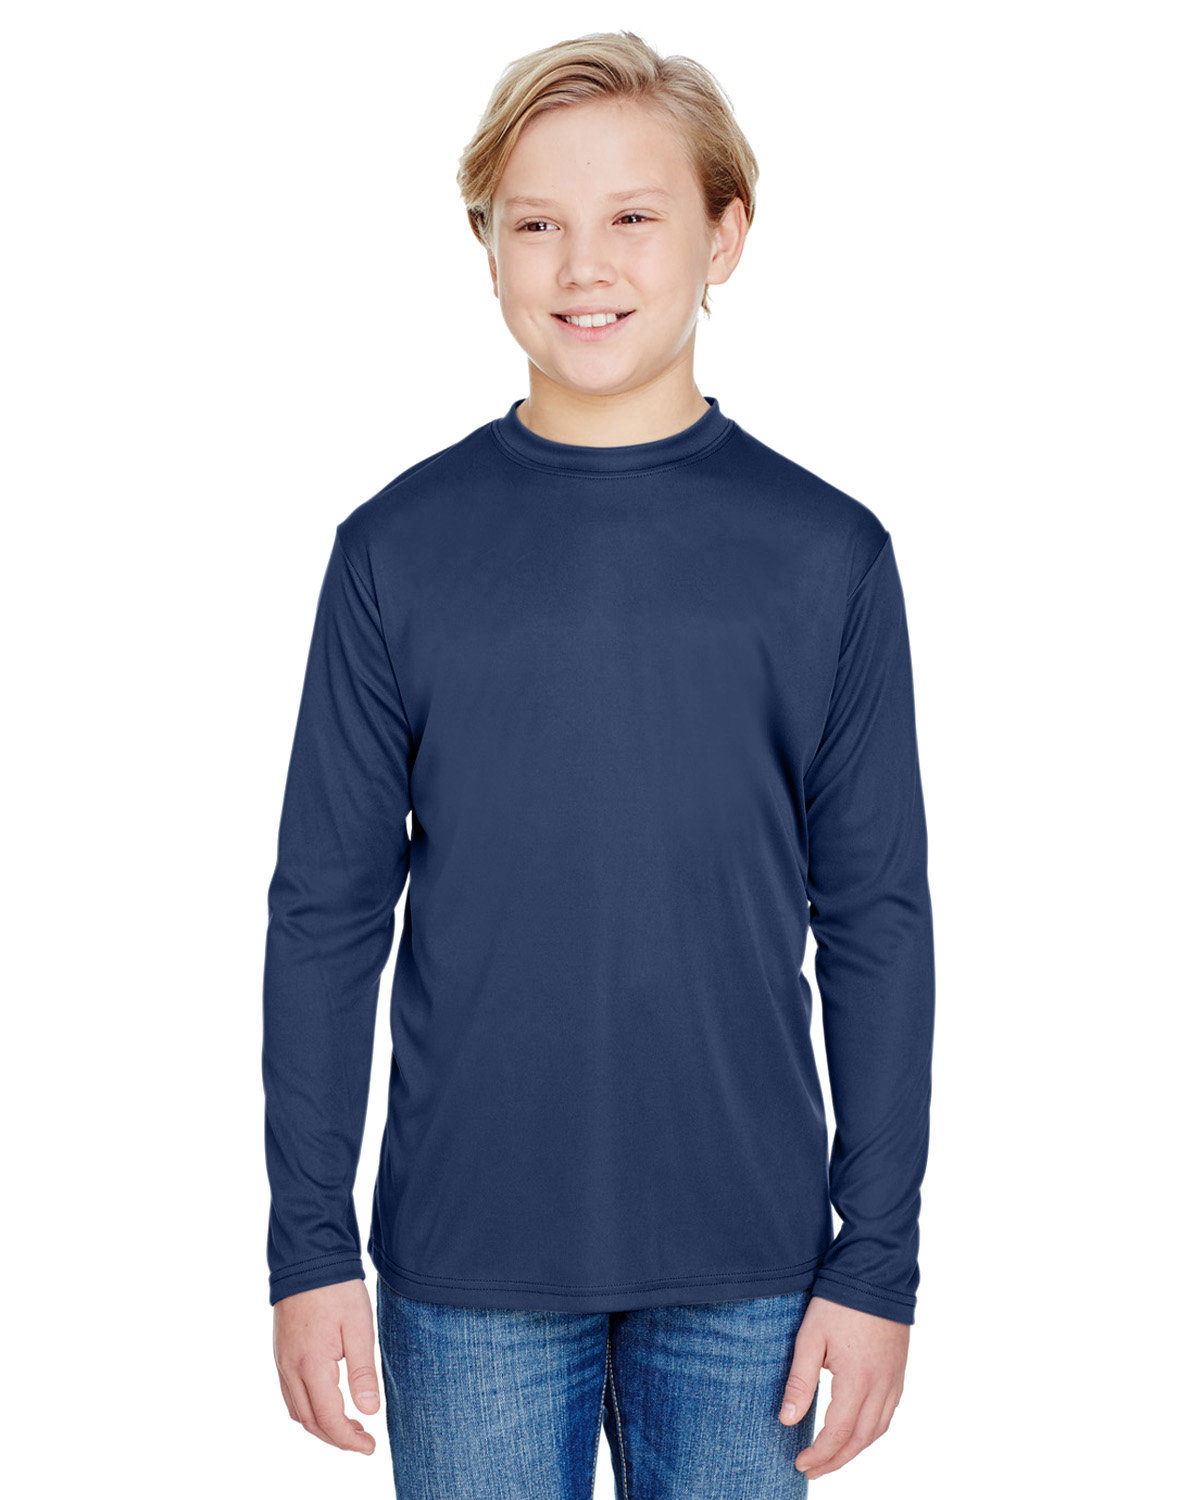 A4 Youth Long Sleeve Cooling Performance Crew Shirt NAVY